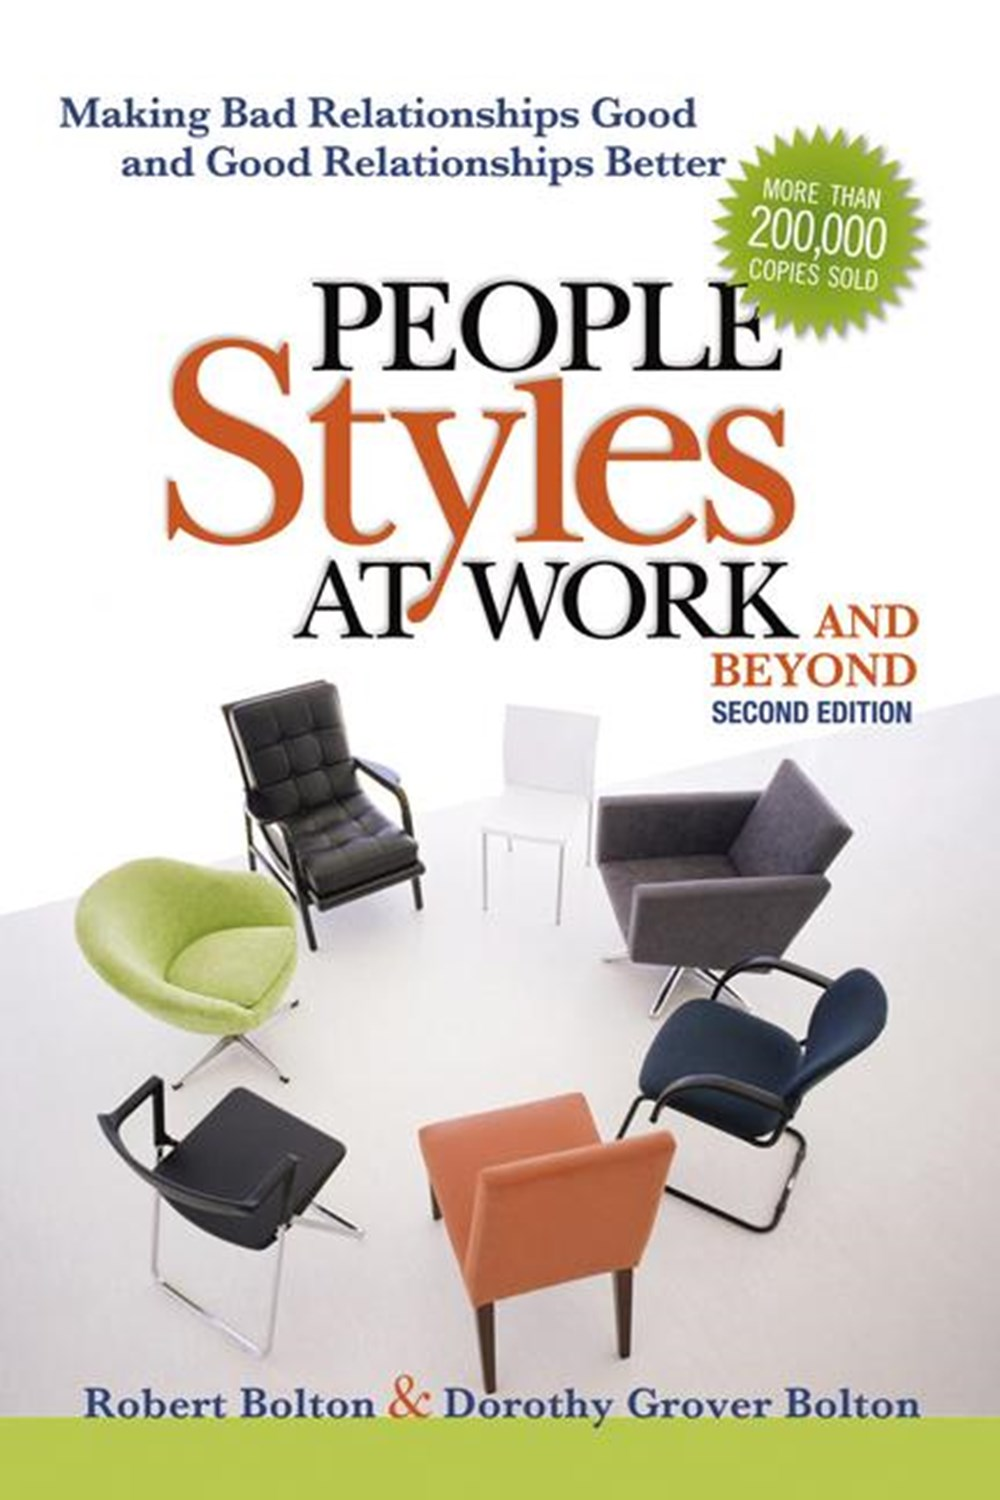 People Styles at Work...and Beyond Making Bad Relationships Good and Good Relationships Better